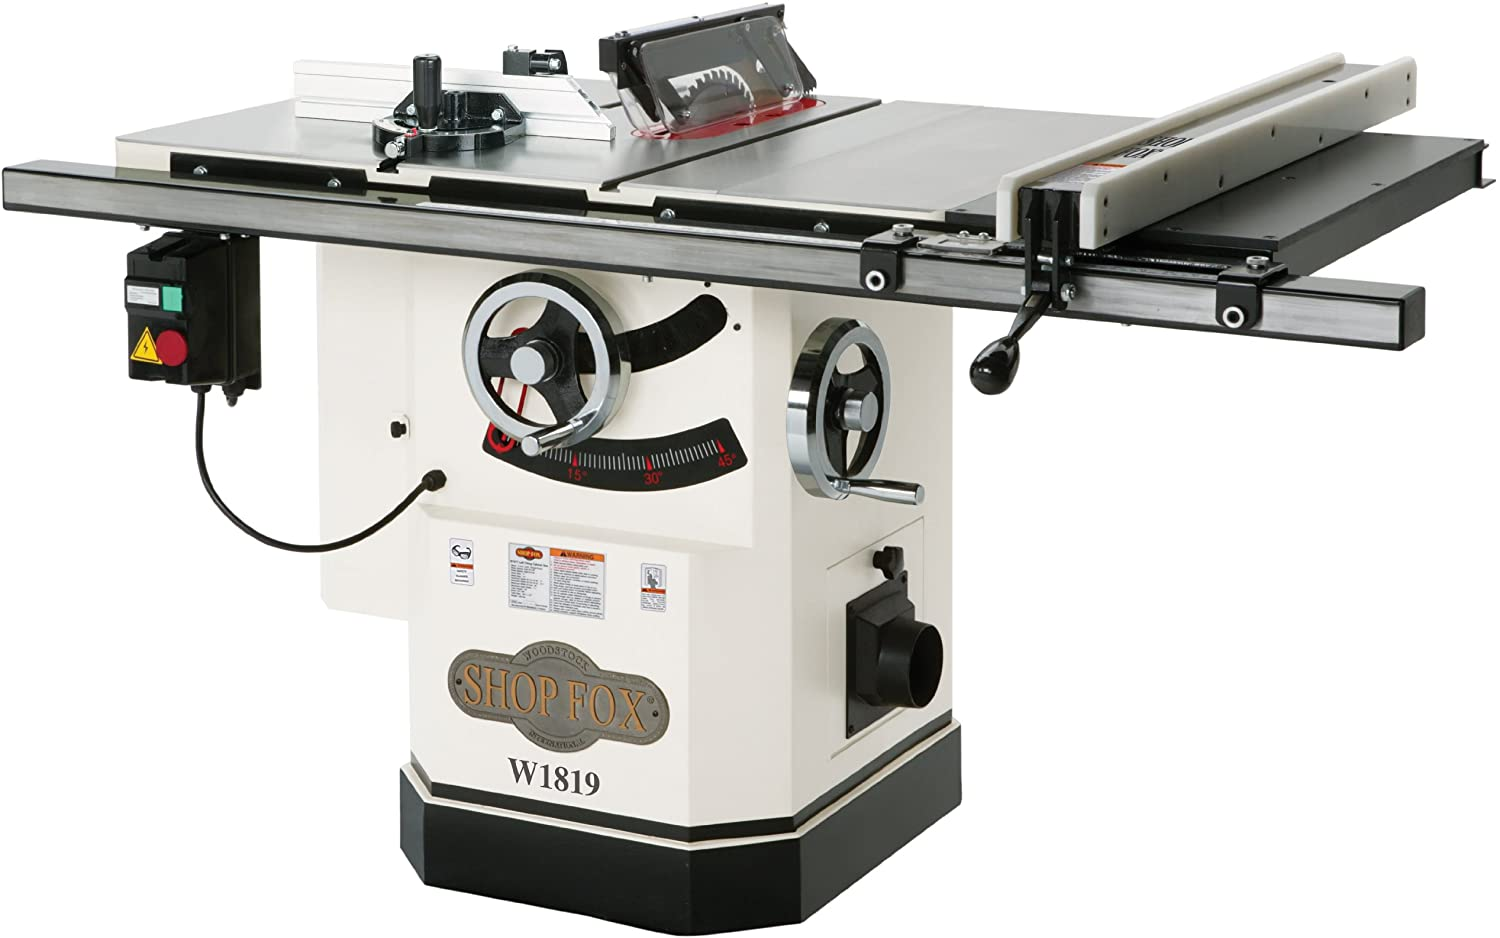 2. Shop Fox W1819 10-Inch Table Saw